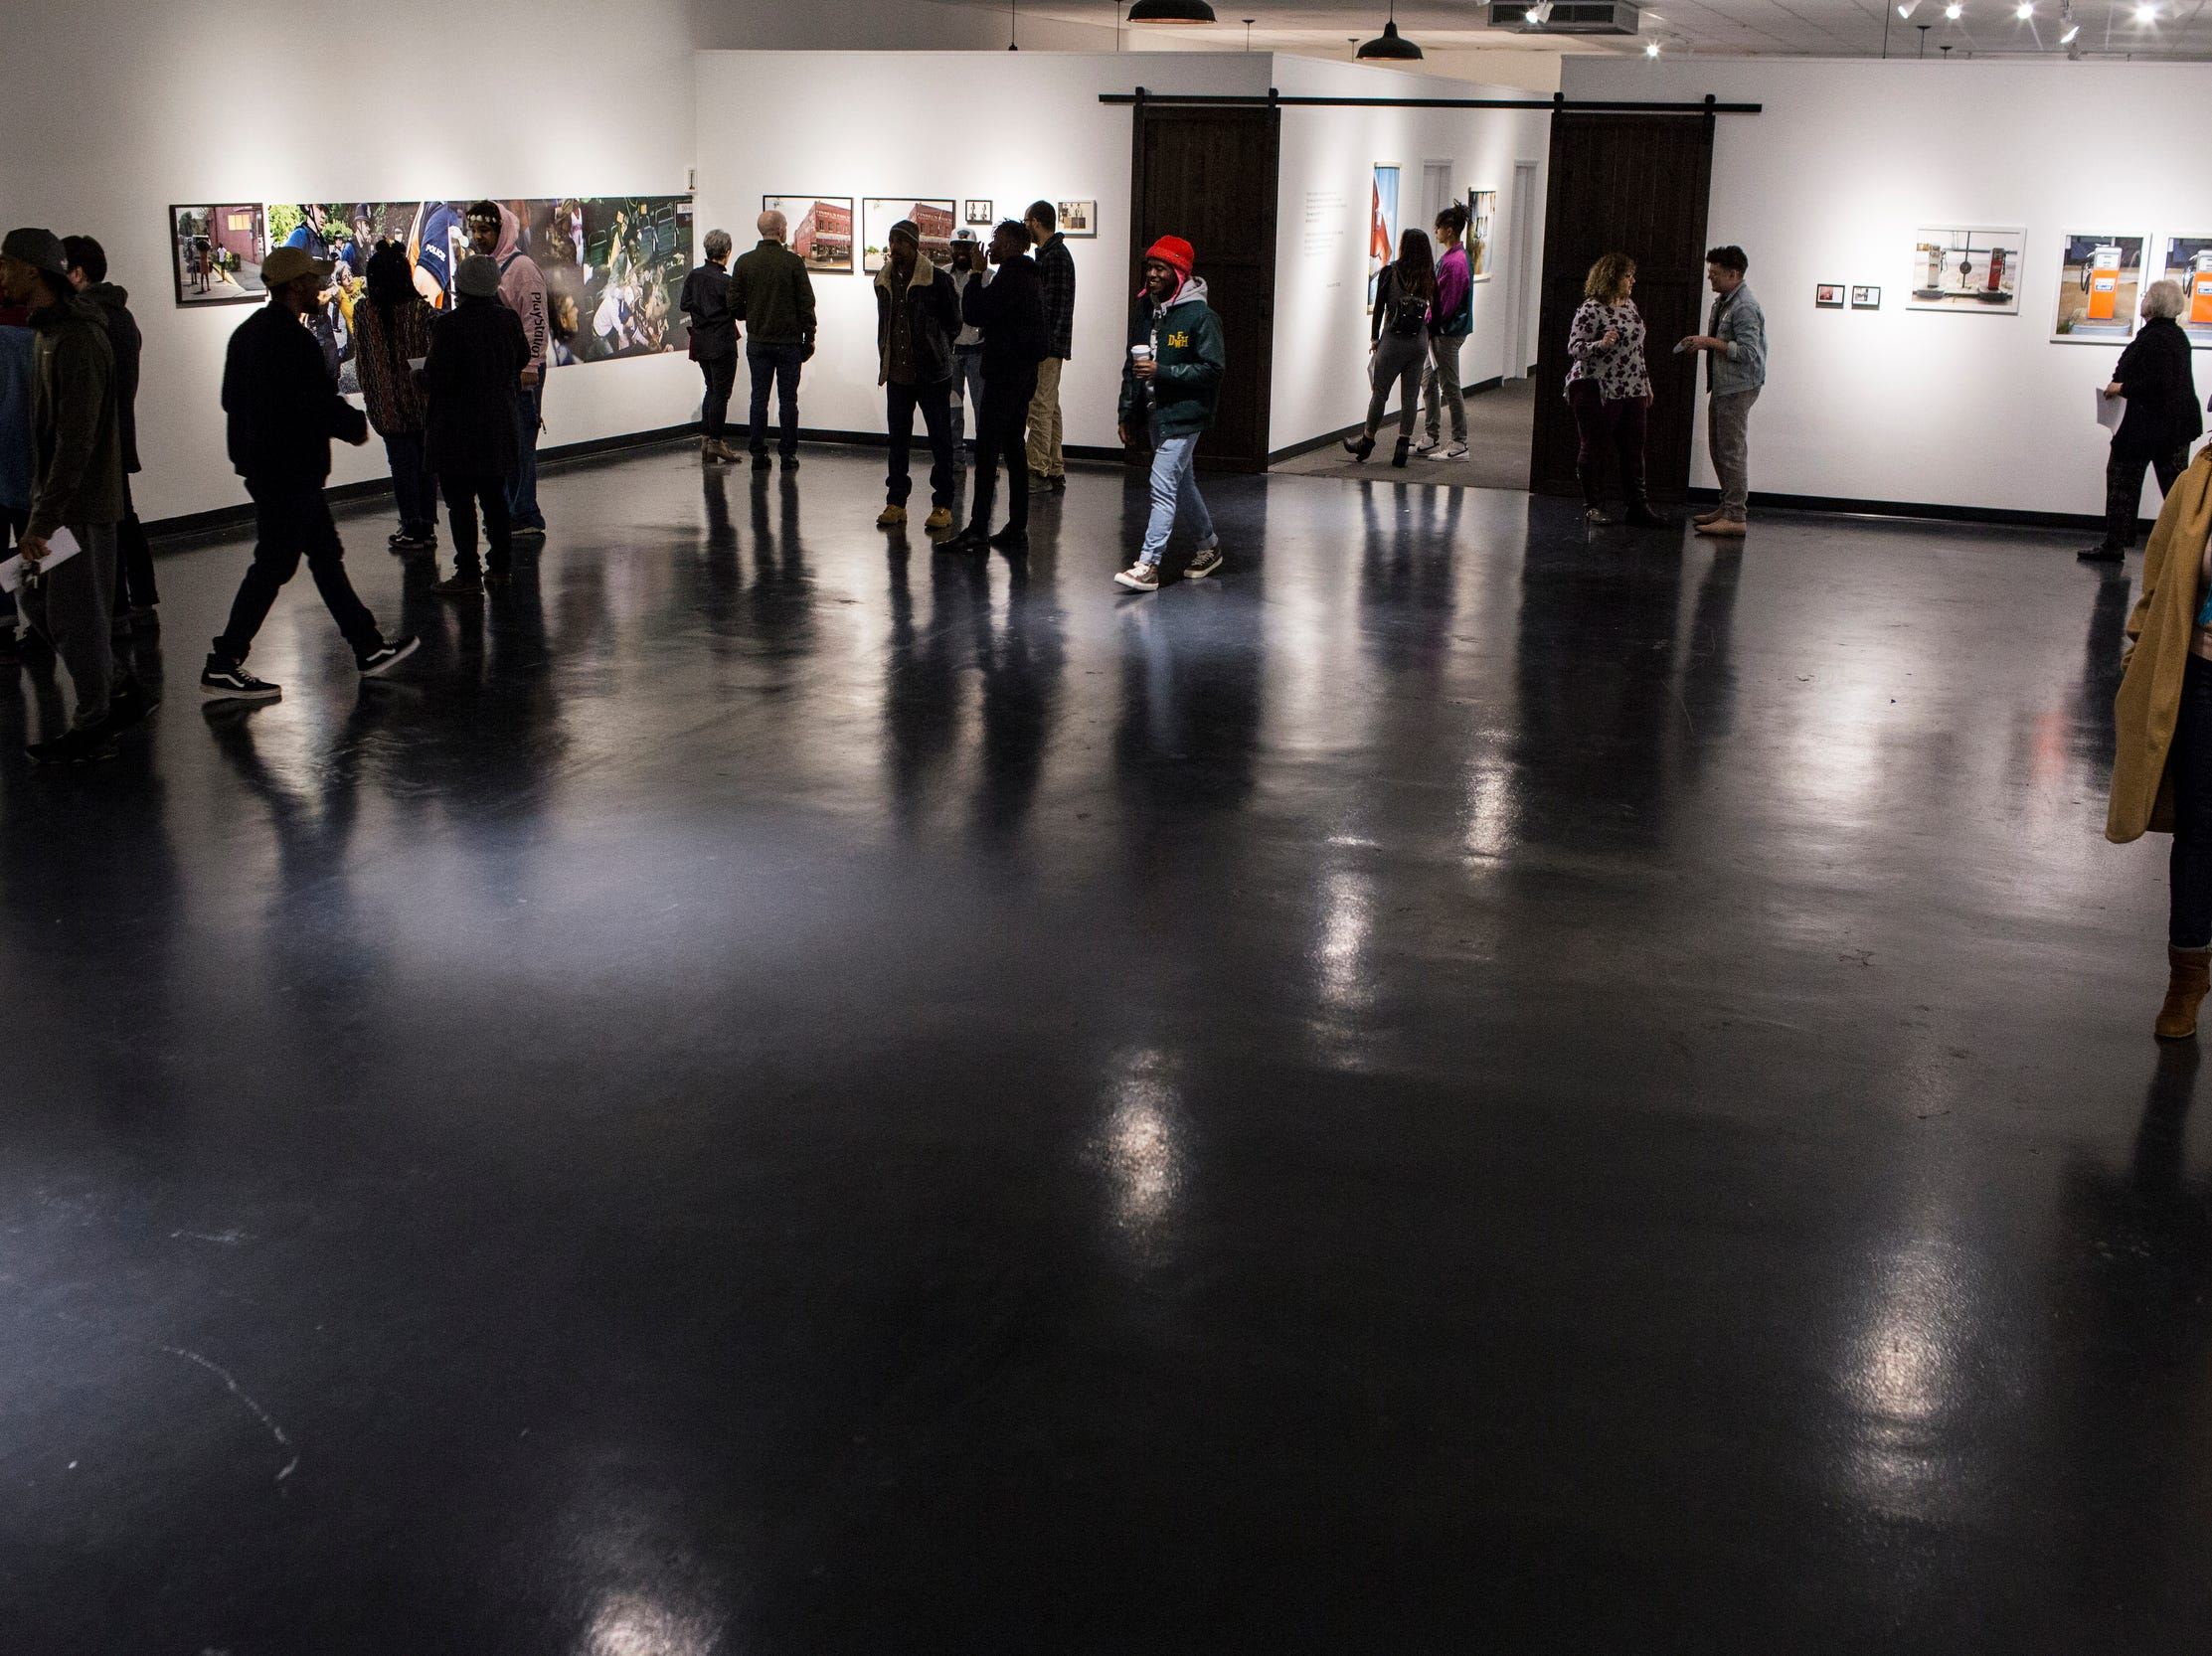 February 08, 2019 - People check out local artists work during the PHTGRPHS show featuring work by Lester Merriweather and Lawrence Matthews at The CMPLX. The CMPLX, a gallery, office, and work space for The Collective, is located at 2234 Lamar Ave. in the Lamar Airways Shopping Center in Orange Mound.